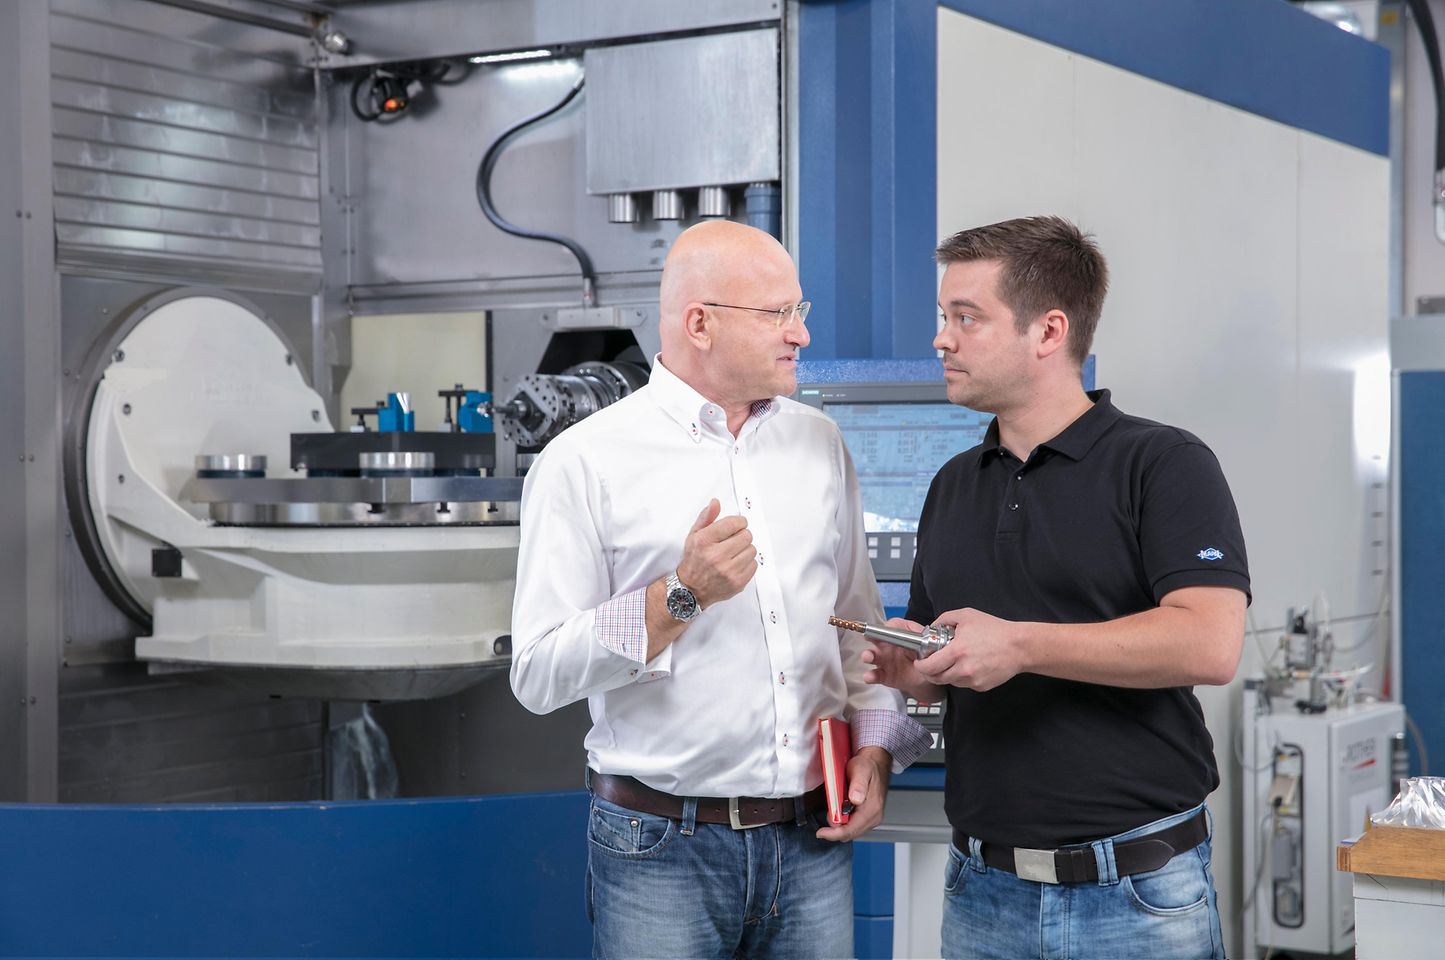 Andreas Rotenberger (MAPAL), Jürgen Schöllkopf (Lubricants Project Manager Henkel Adhesive Technologies) during a regular technical support visit.